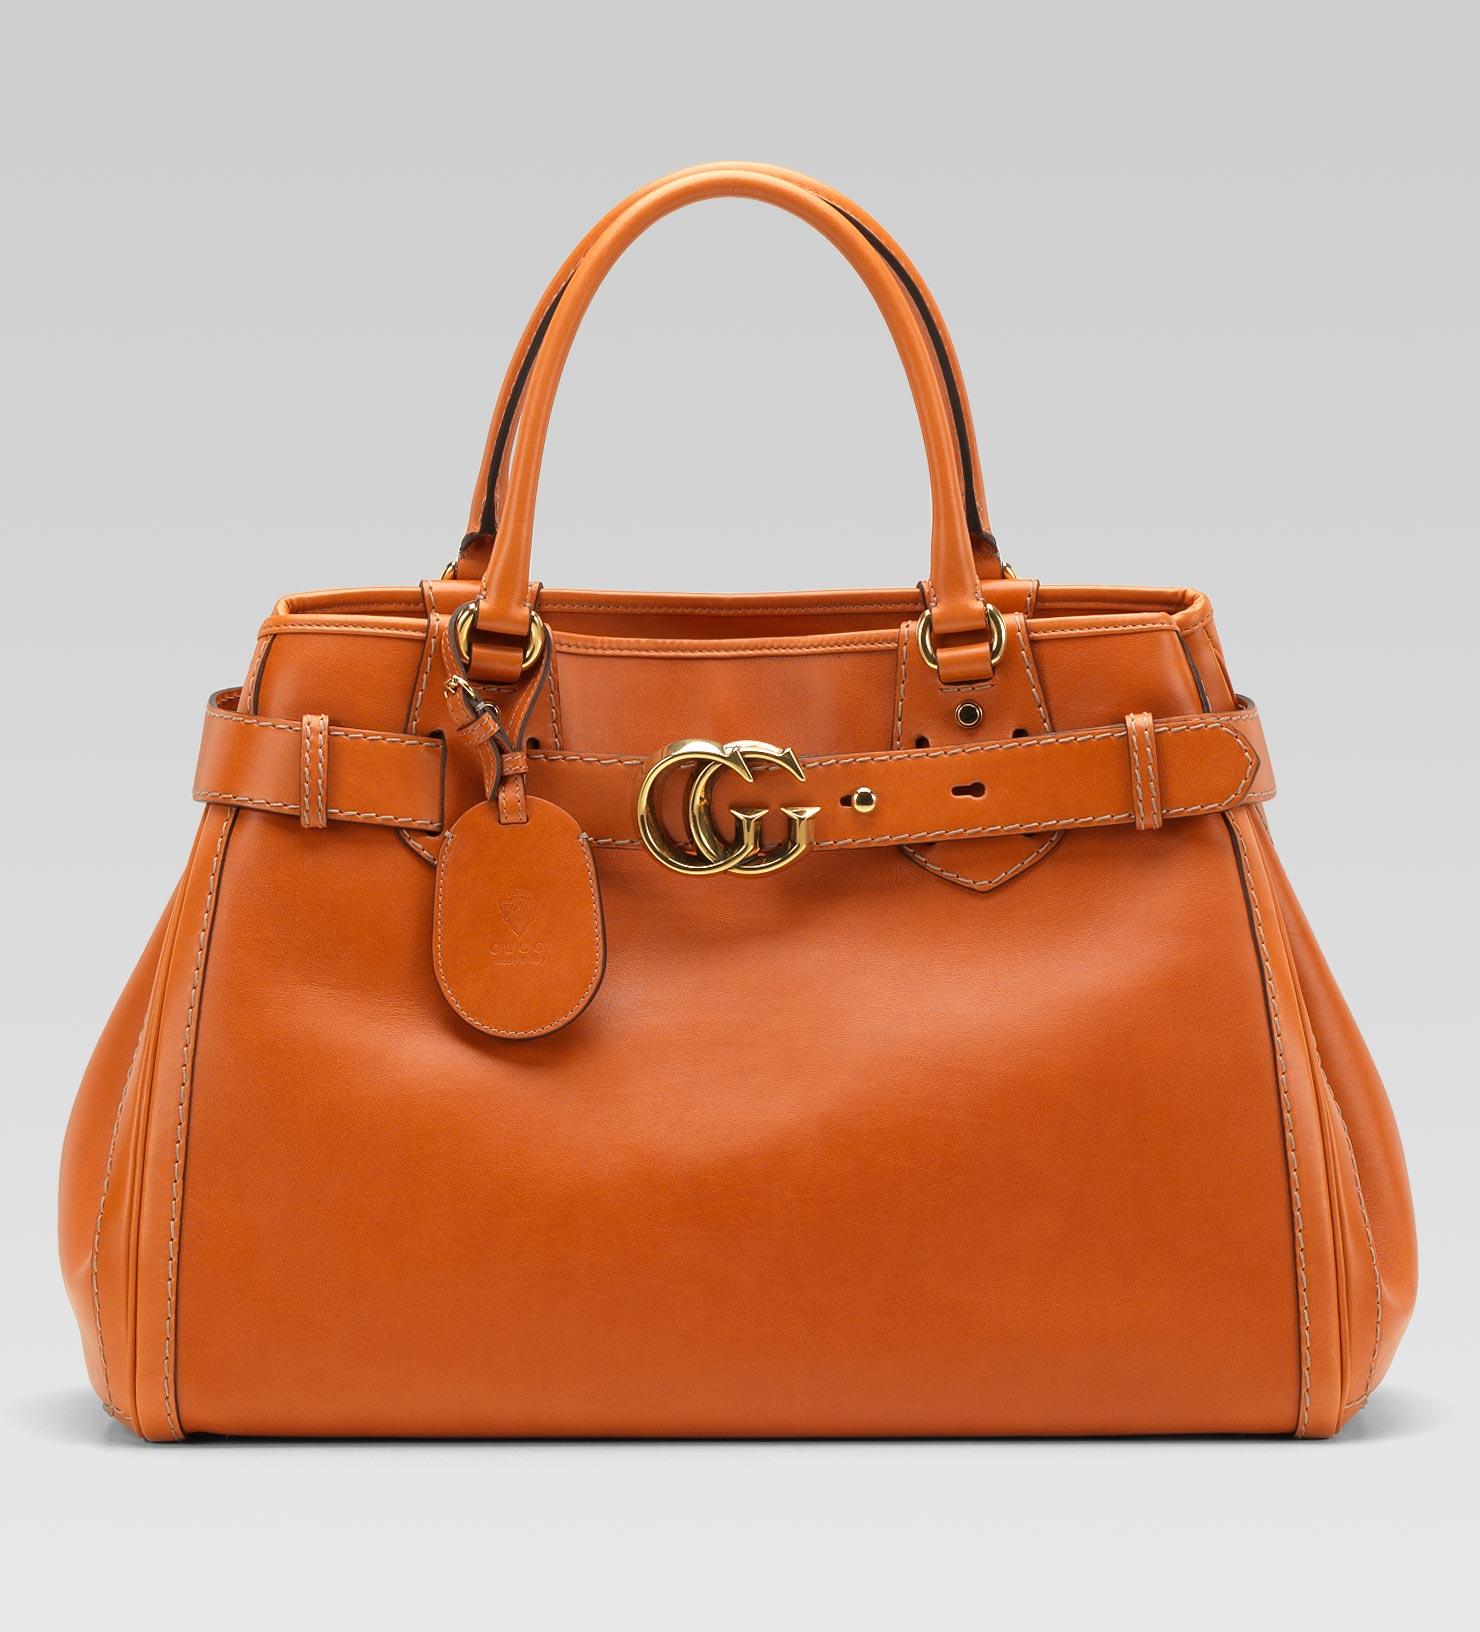 08e8bbab67fe Gucci Gg Running Large Tote with Double G Detail in Orange - Lyst